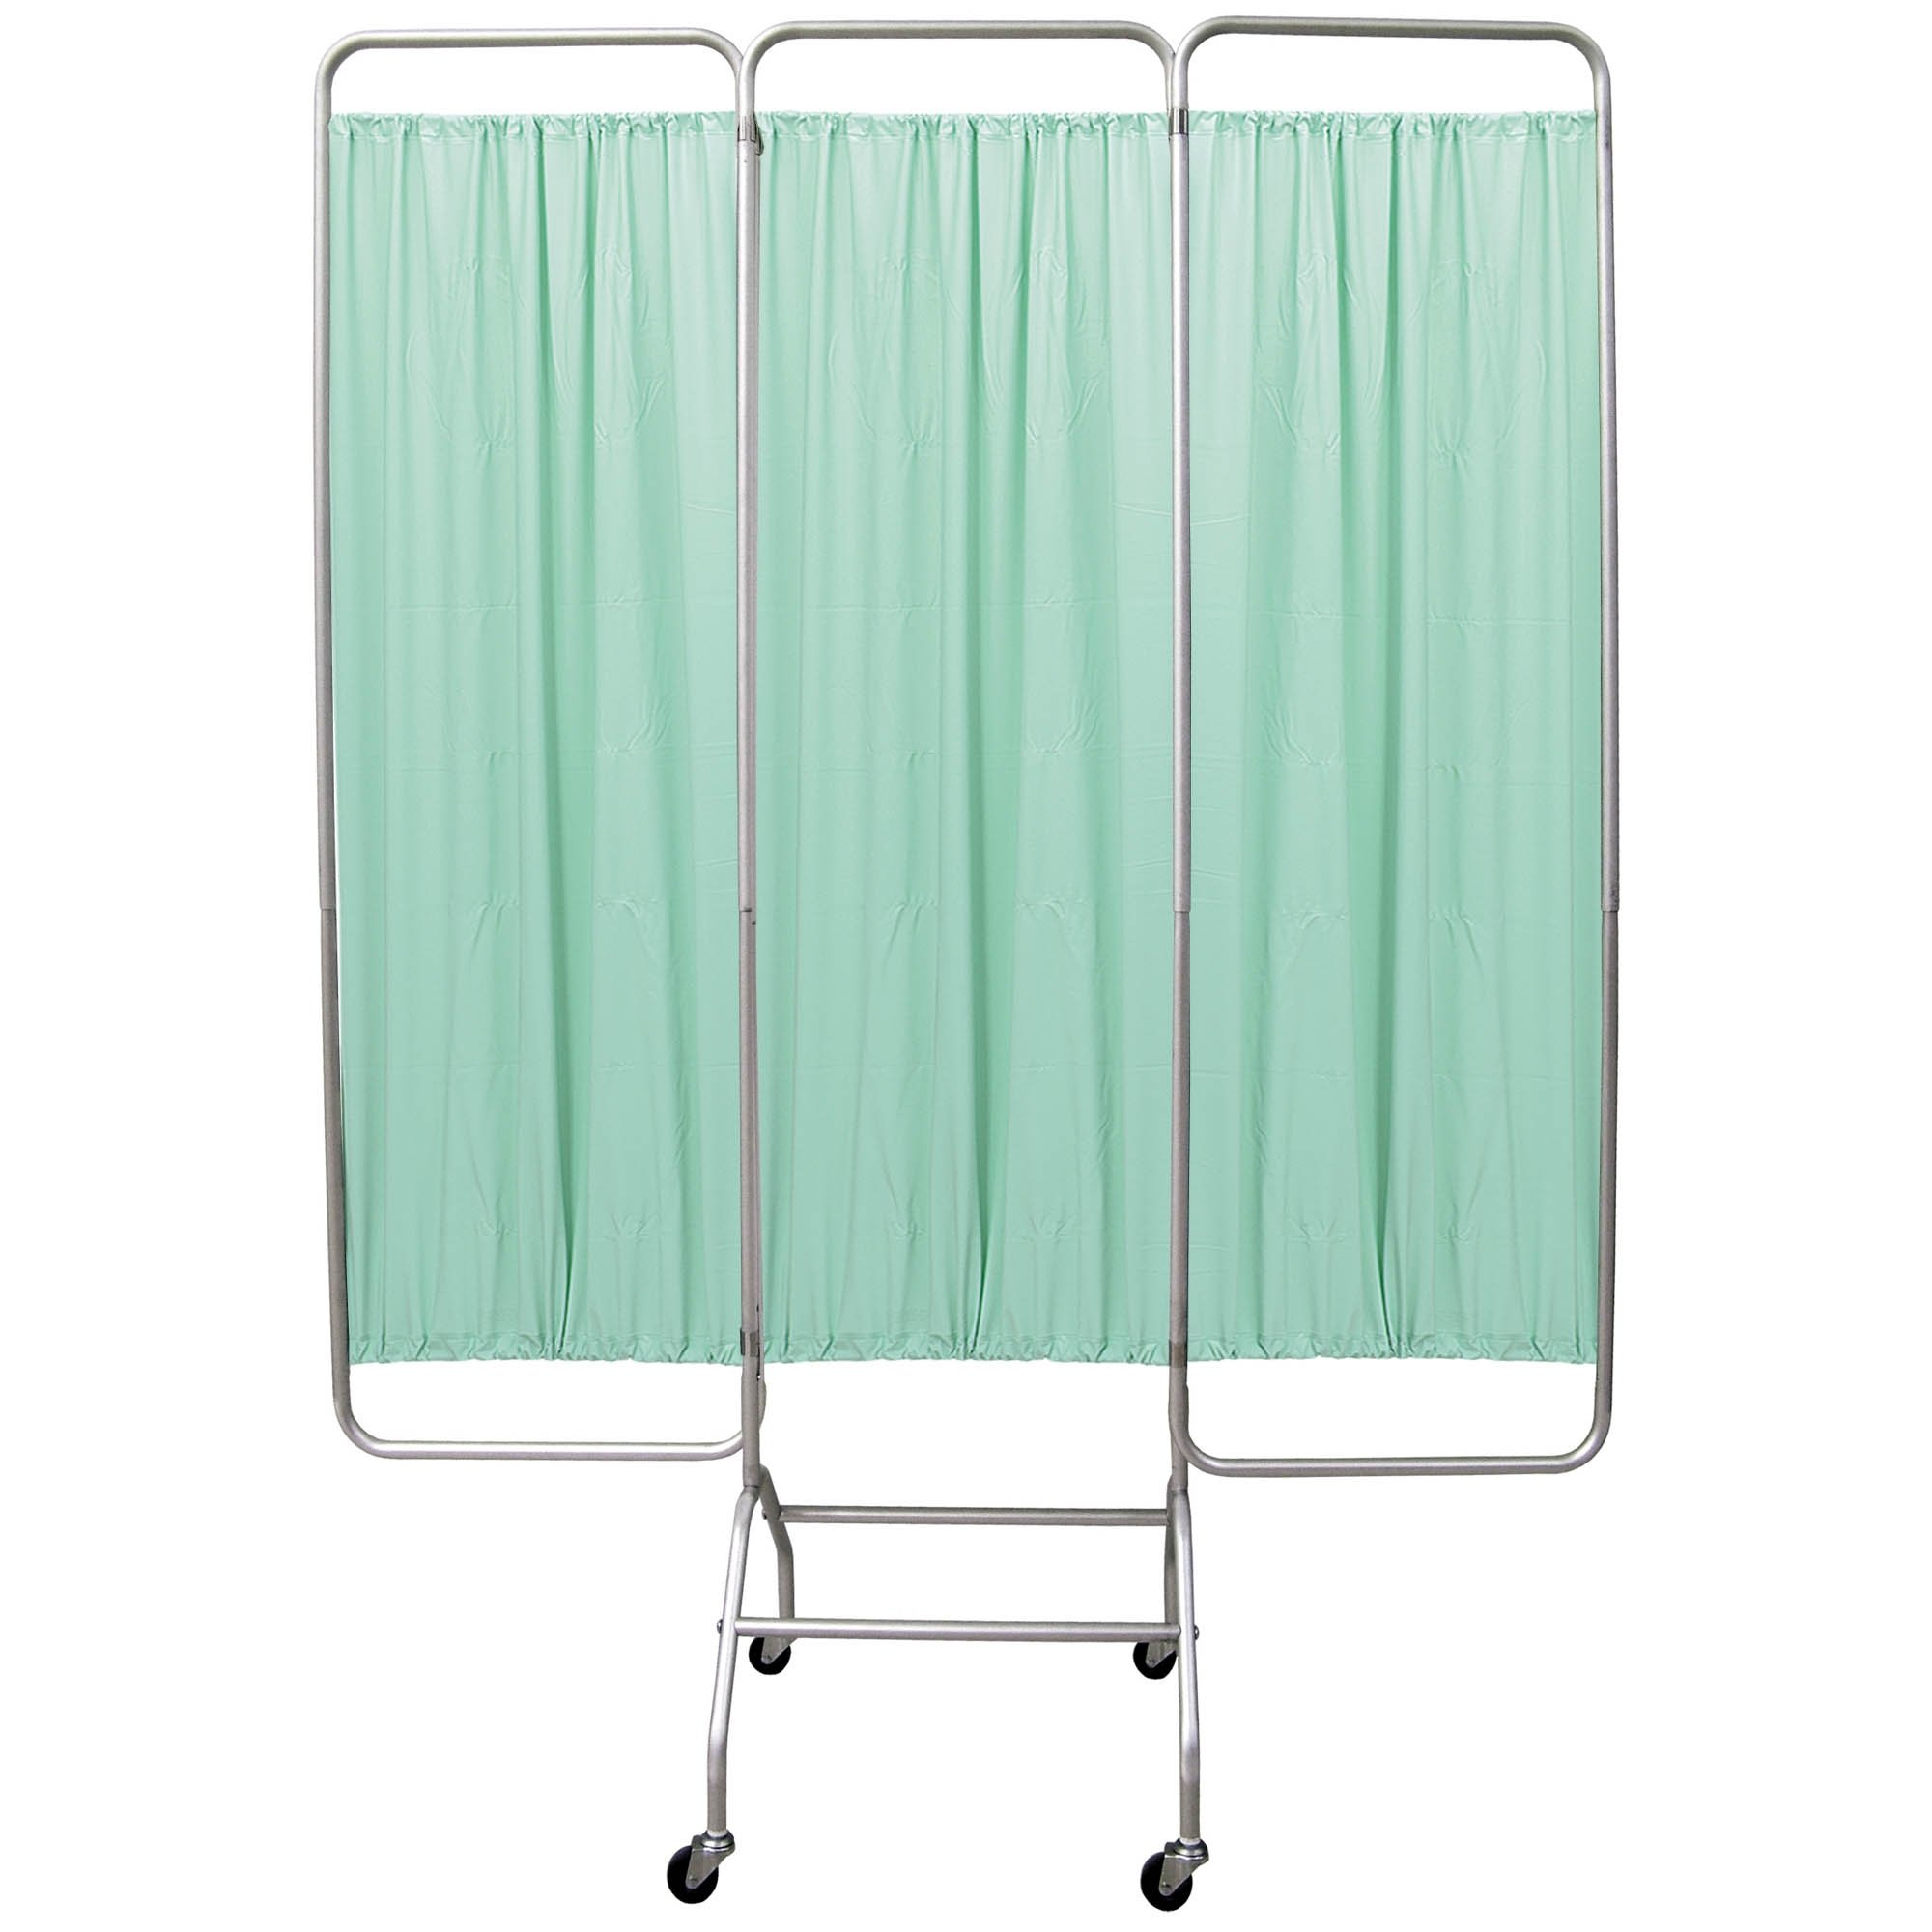 Mobile 3 Section Folding Privacy Screen - Green Vinyl Screen Panel